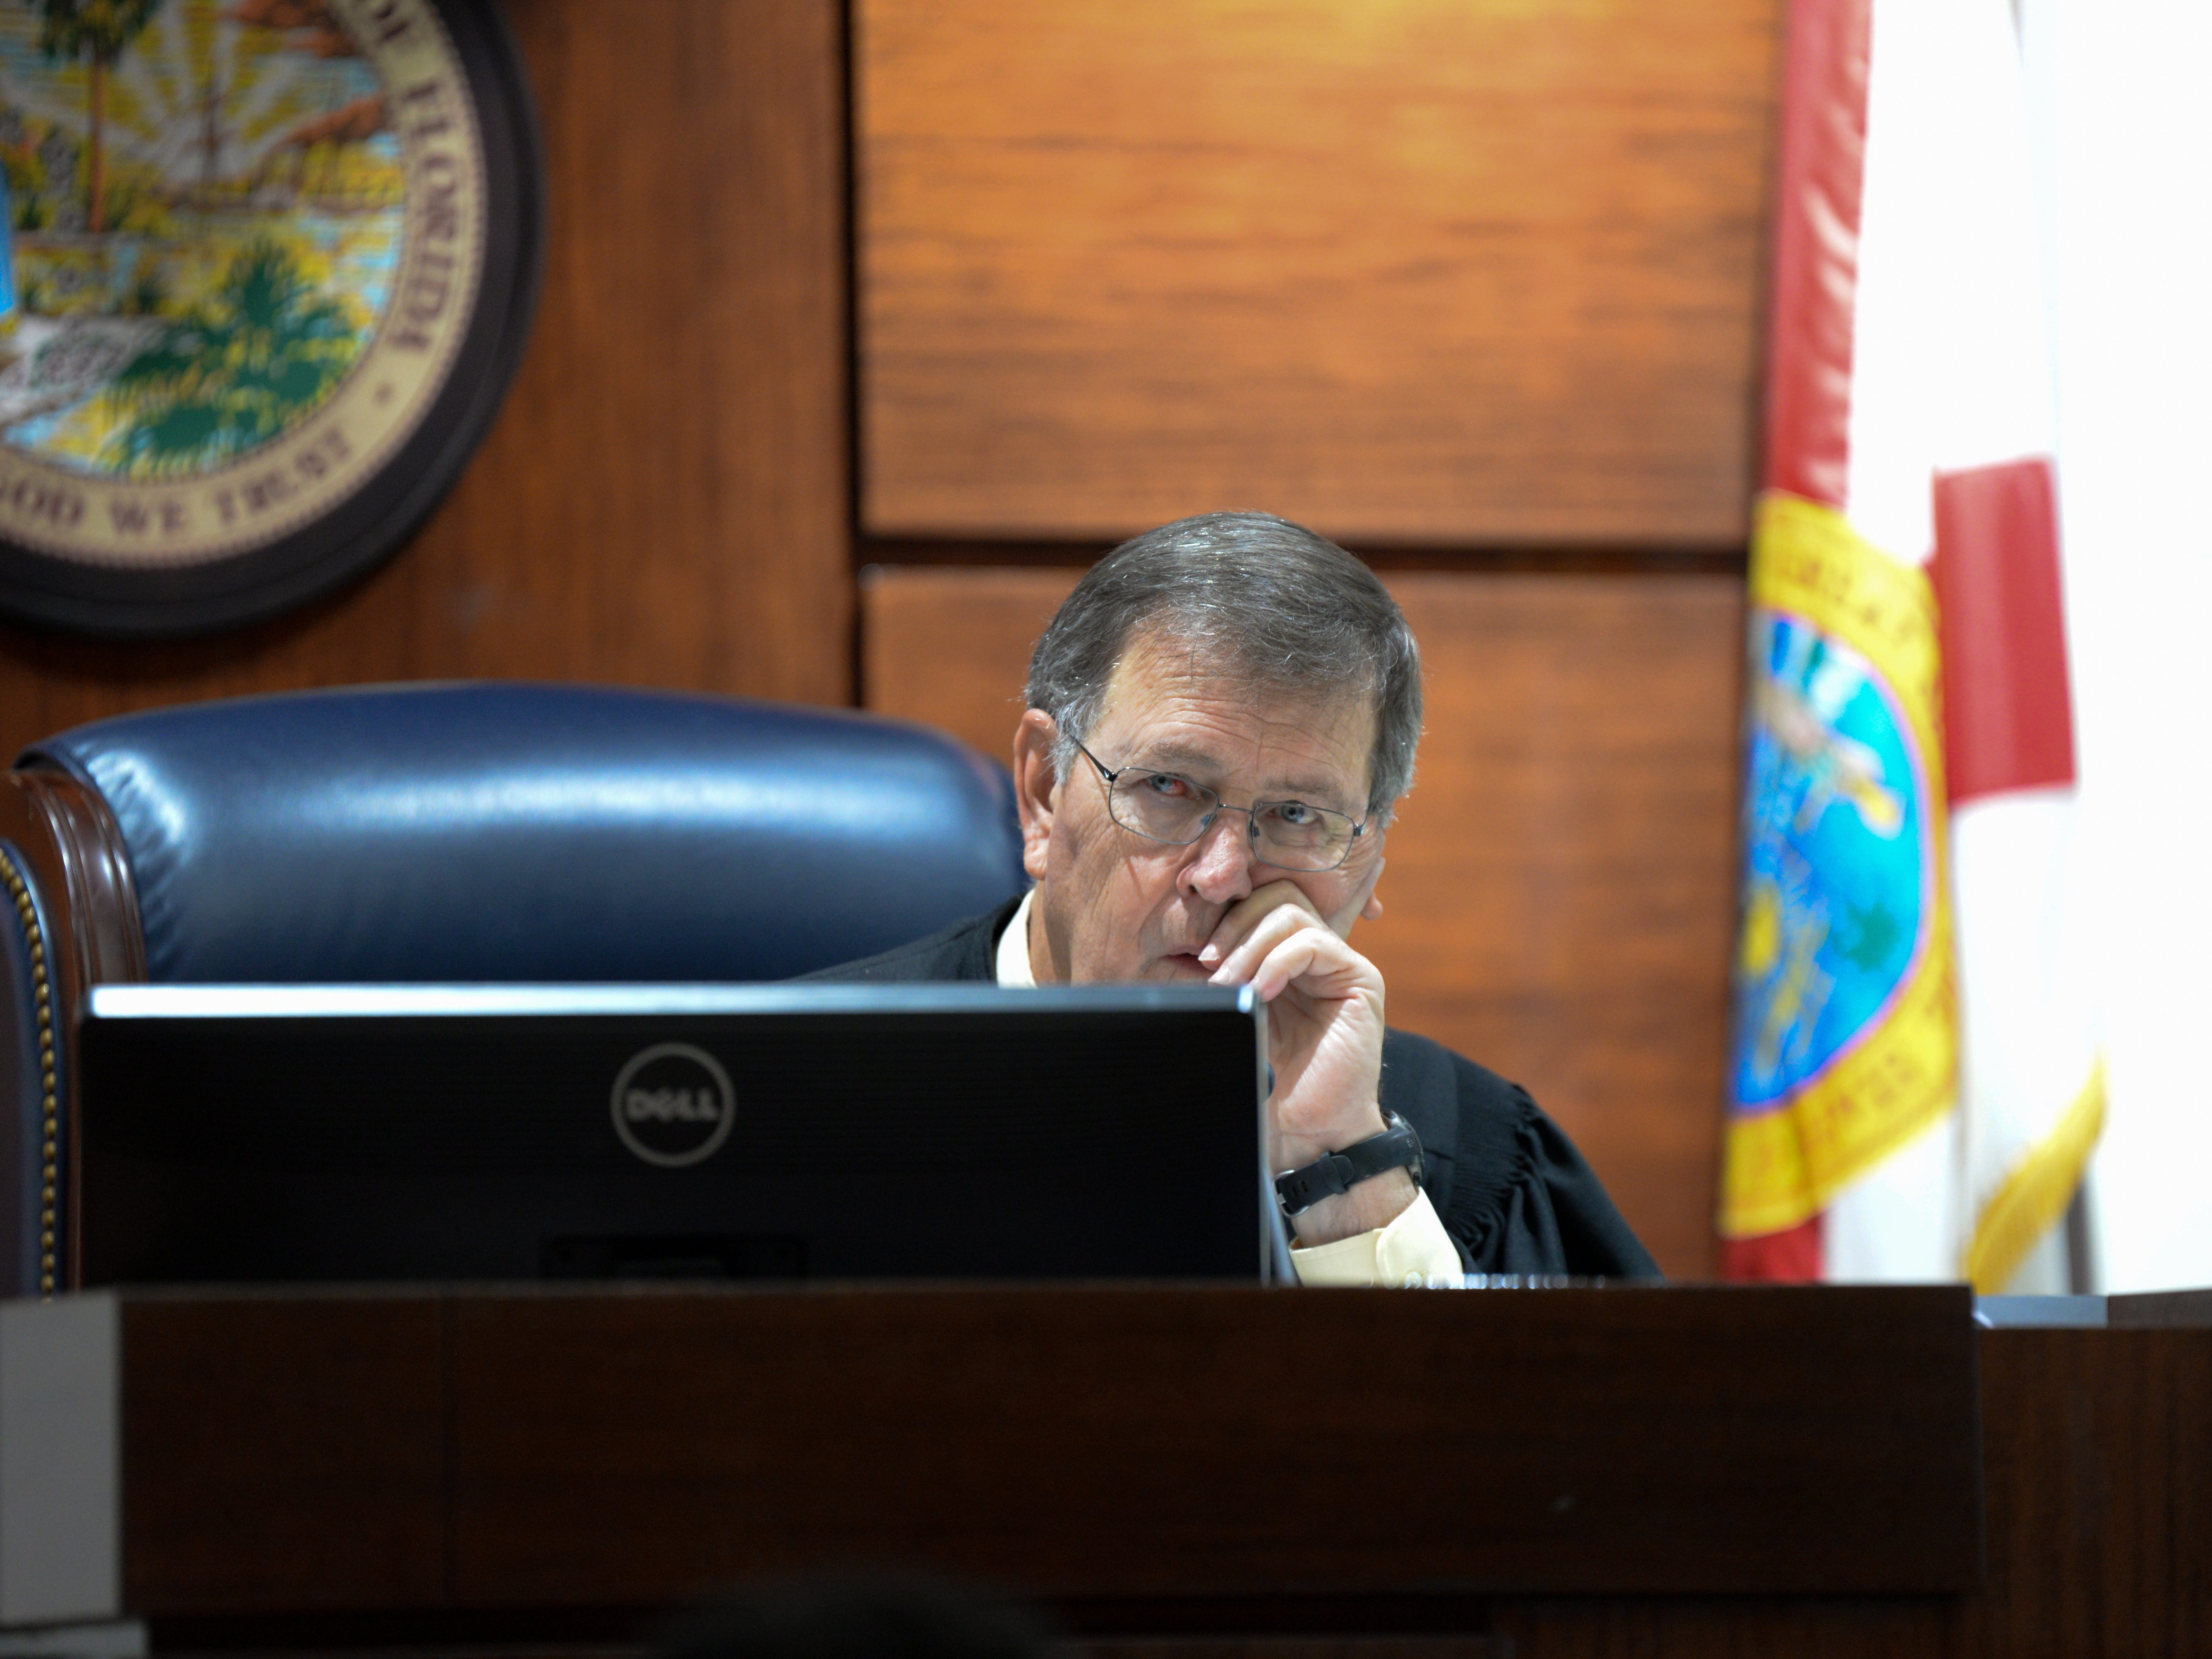 Leon County Circuit Judge James C. Hankinson, listens to arguments from Saam Zengeneh, attorney for Sigfredo Garcia, one of two suspects set to stand trial next month in the murder of Dan Markel and Assistant State Attorney Georgia Cappleman at a hearing requested by Zengeneh for a continuance in Garcia's trial at the Leon County Courthouse Tuesday, May 7, 2019.